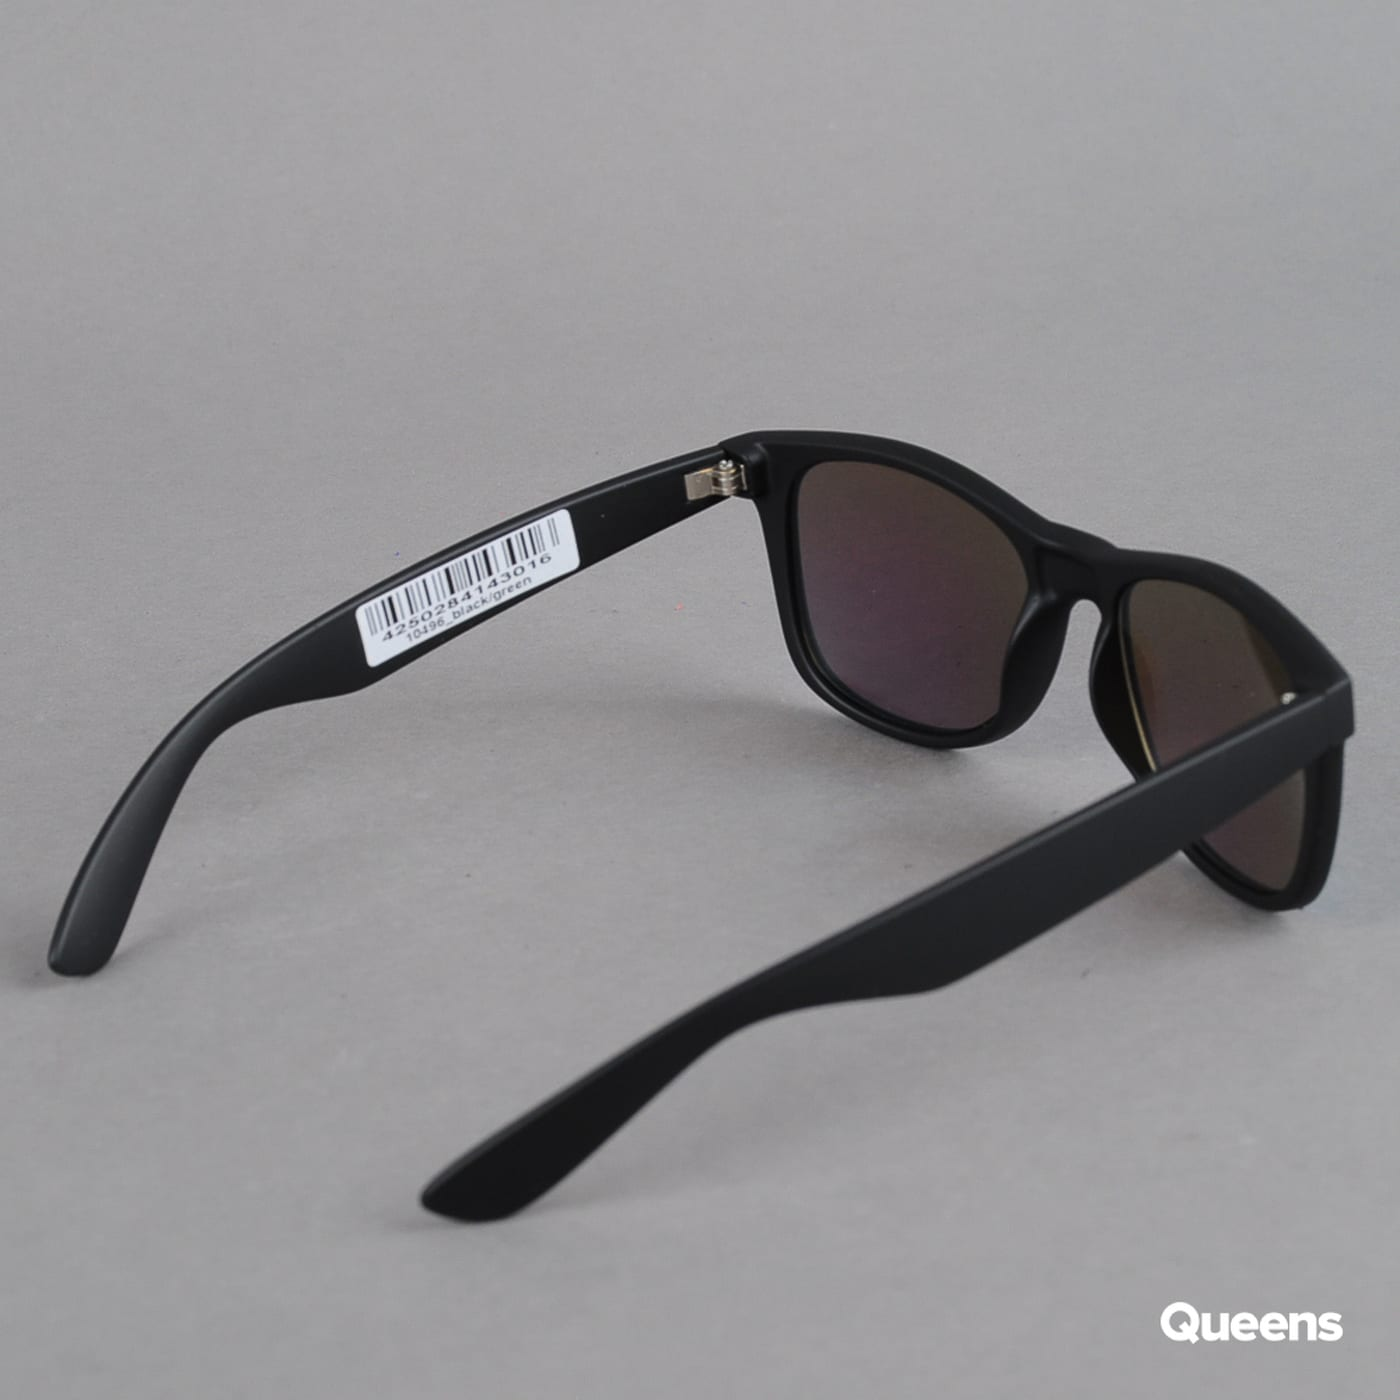 MD Sunglasses Likoma Mirror black / green